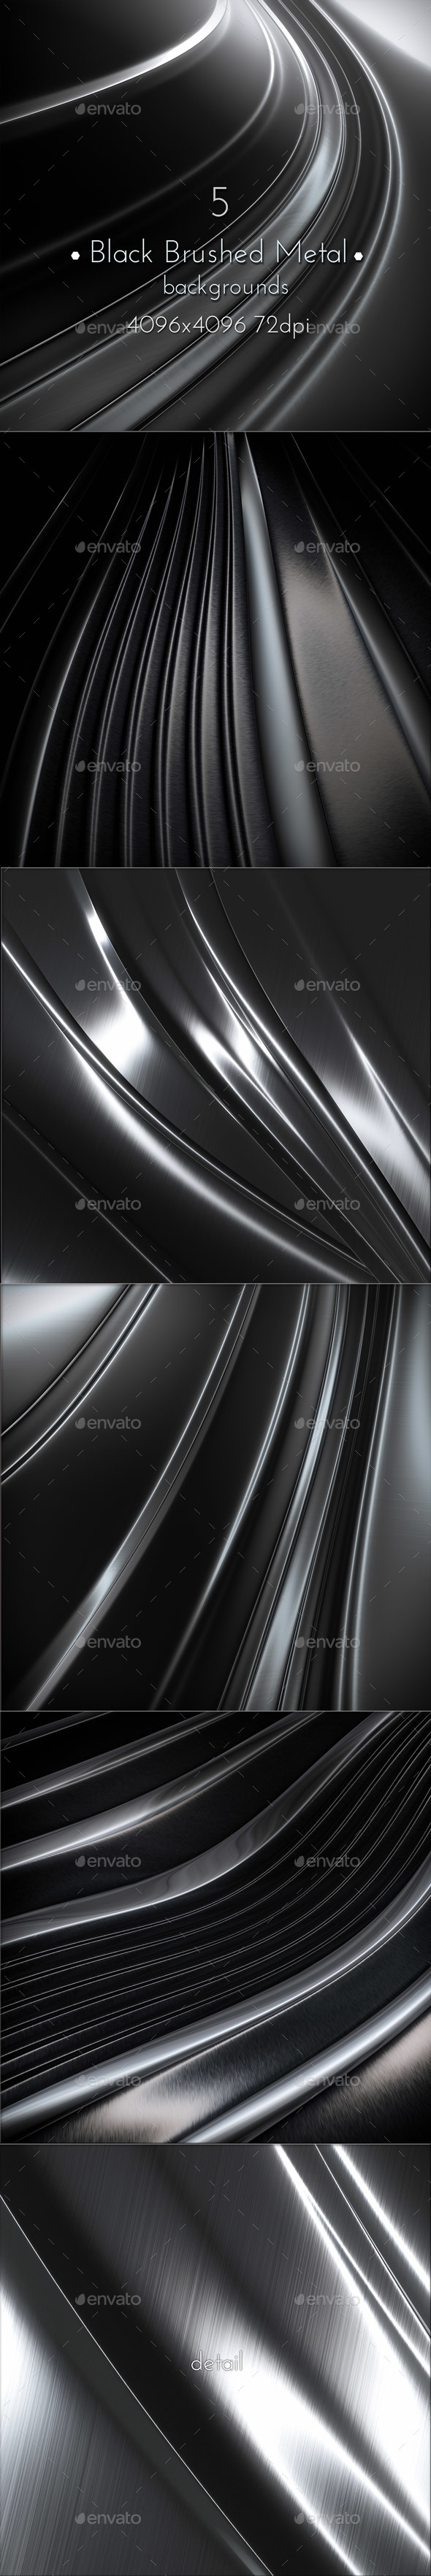 Black Brushed Metal Surface - Abstract Backgrounds